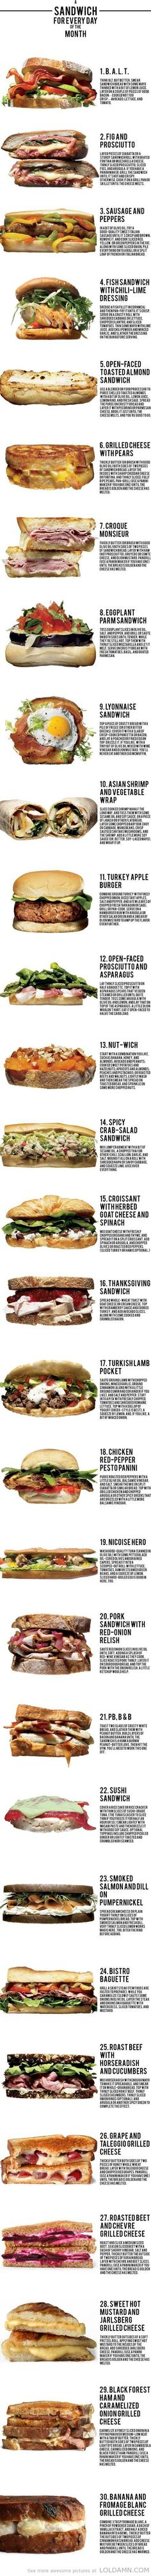 30 great sandwiches, you're welcome.